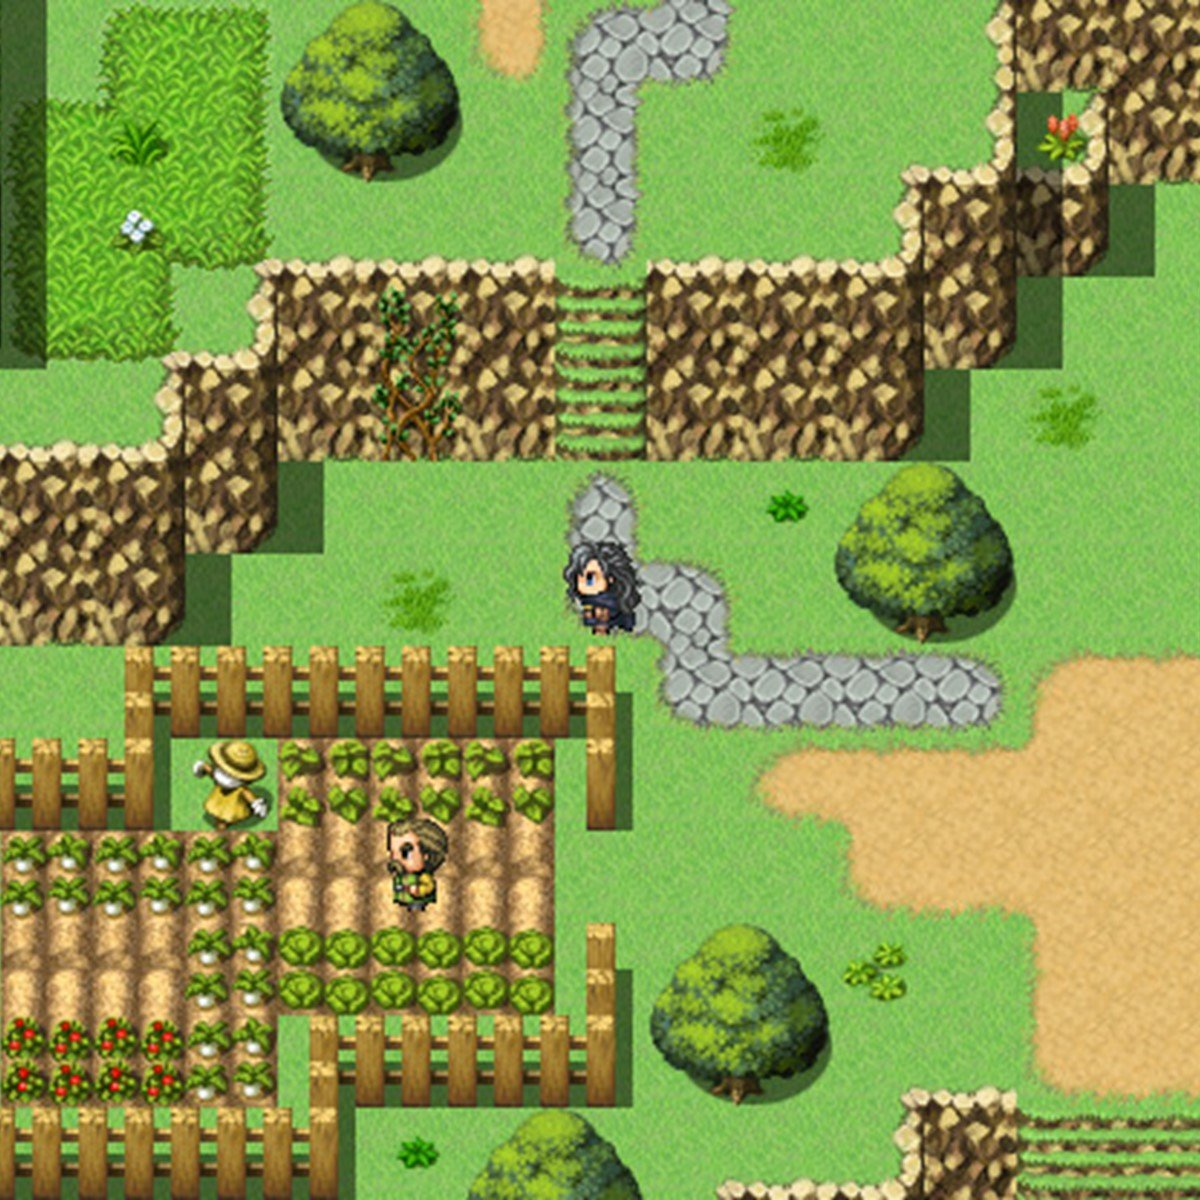 dating rpg maker Charon is a game-developer of rpg games, using the rpg maker for their games charon has overall used pixel art and sprites to develop their games and as for the gameplay it's mostly revolved around stories rather than game play.